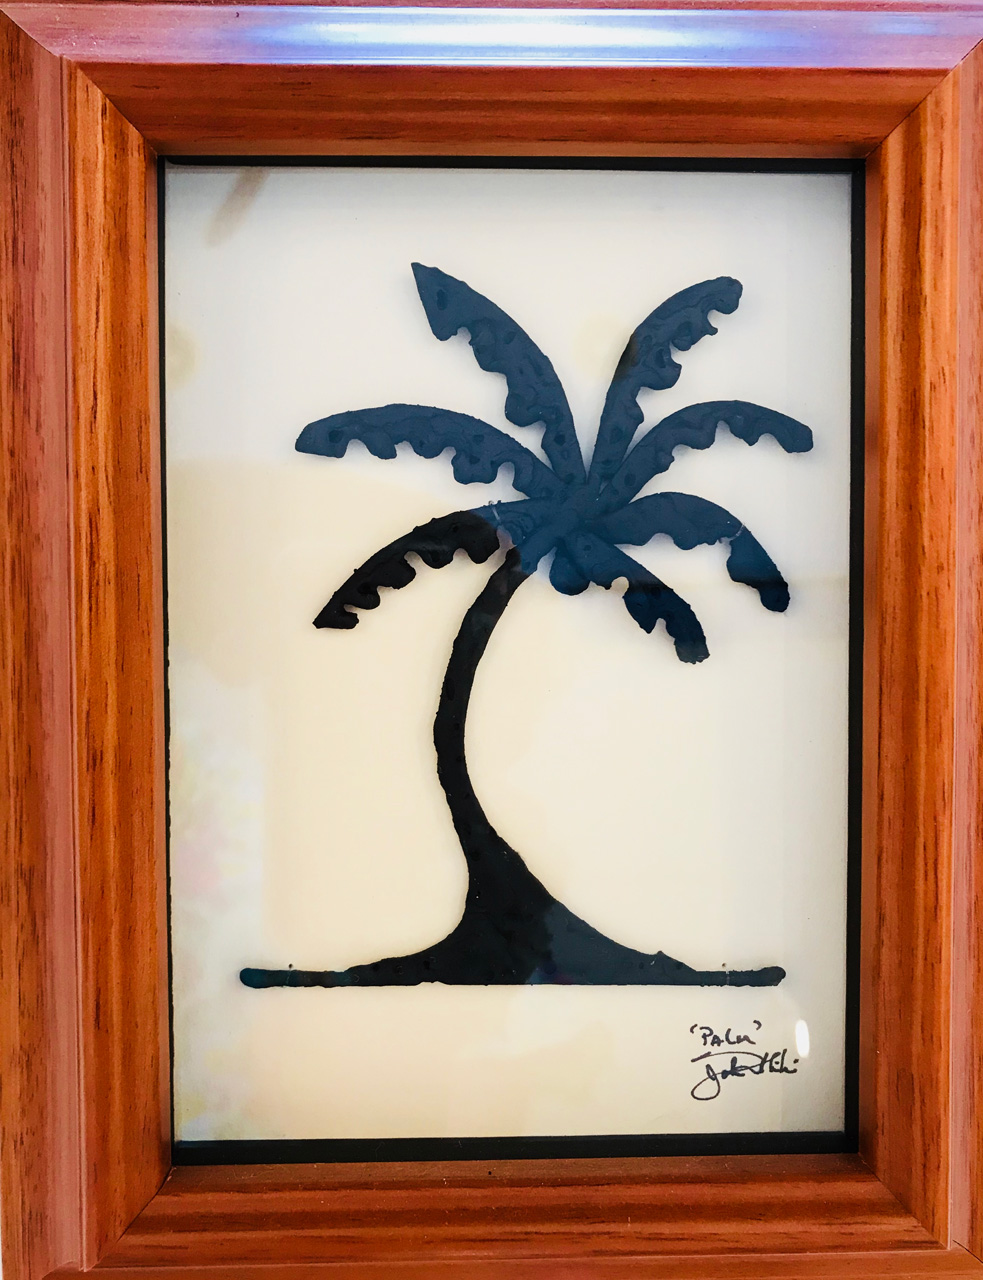 Framed metal sculpture entitled Cocunut Palm Tree by John Ilnicki